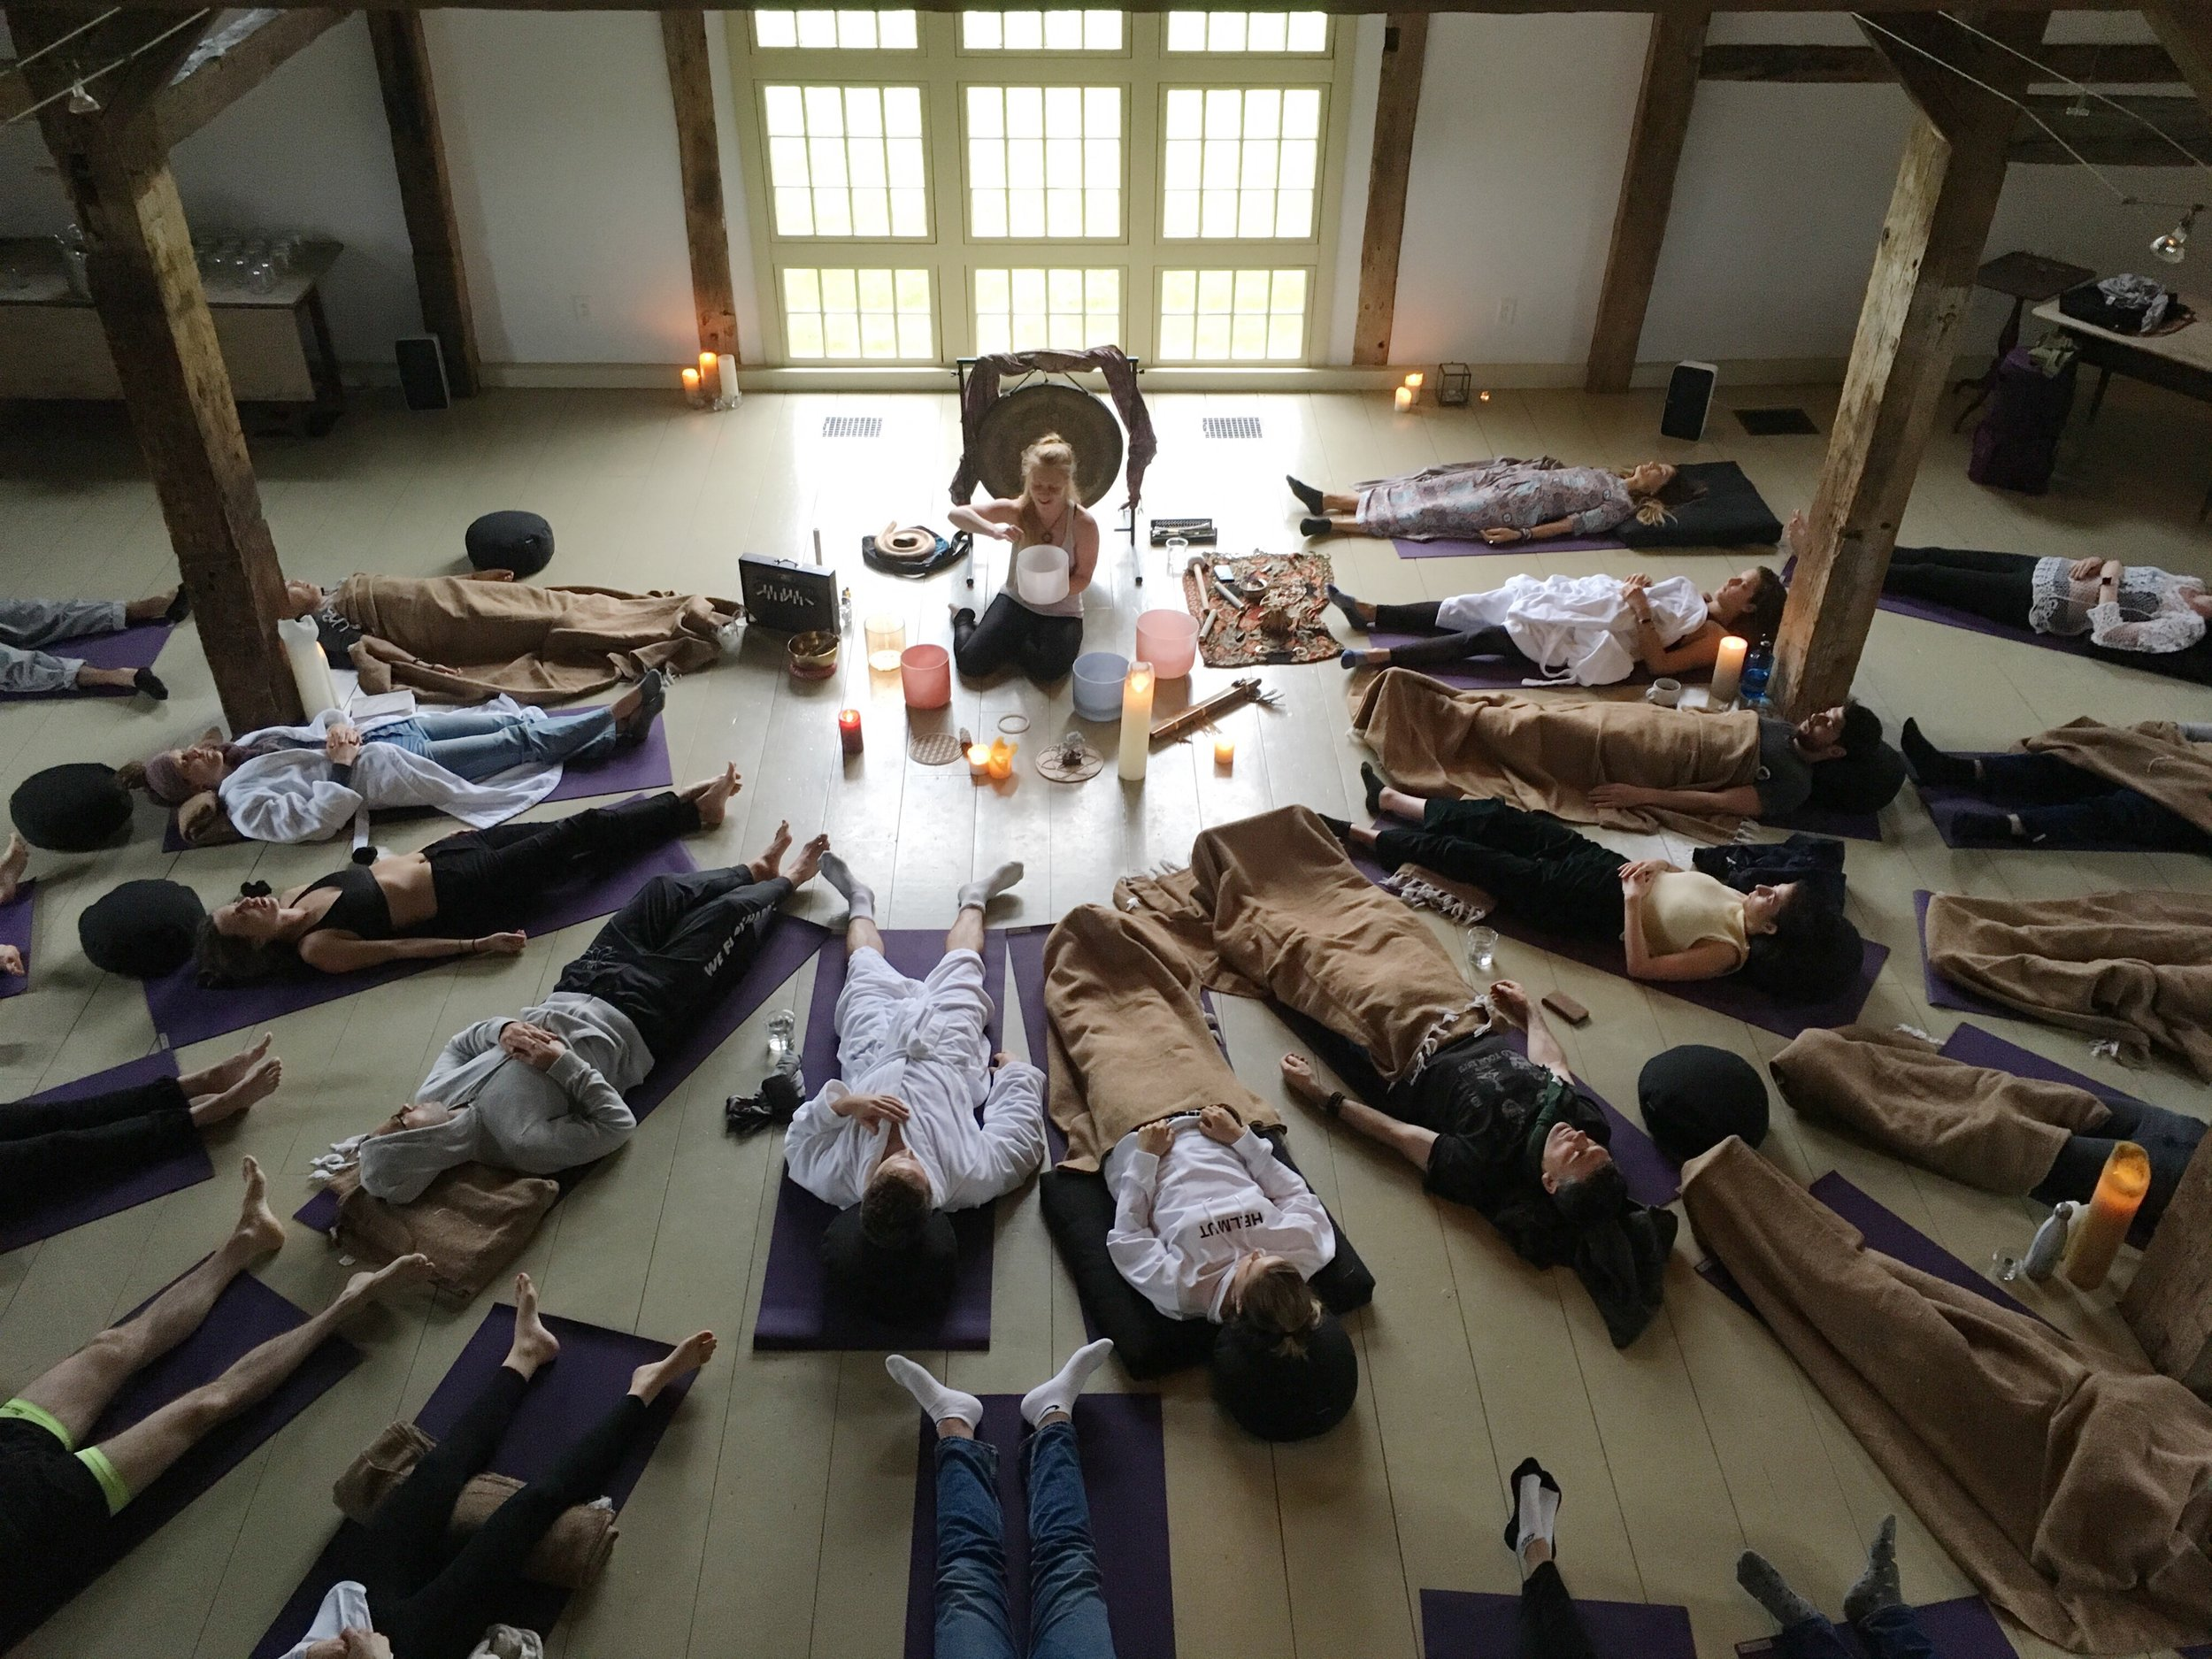 Sound Healing at The Dutchess in the Hudson Valley, upstate New York.